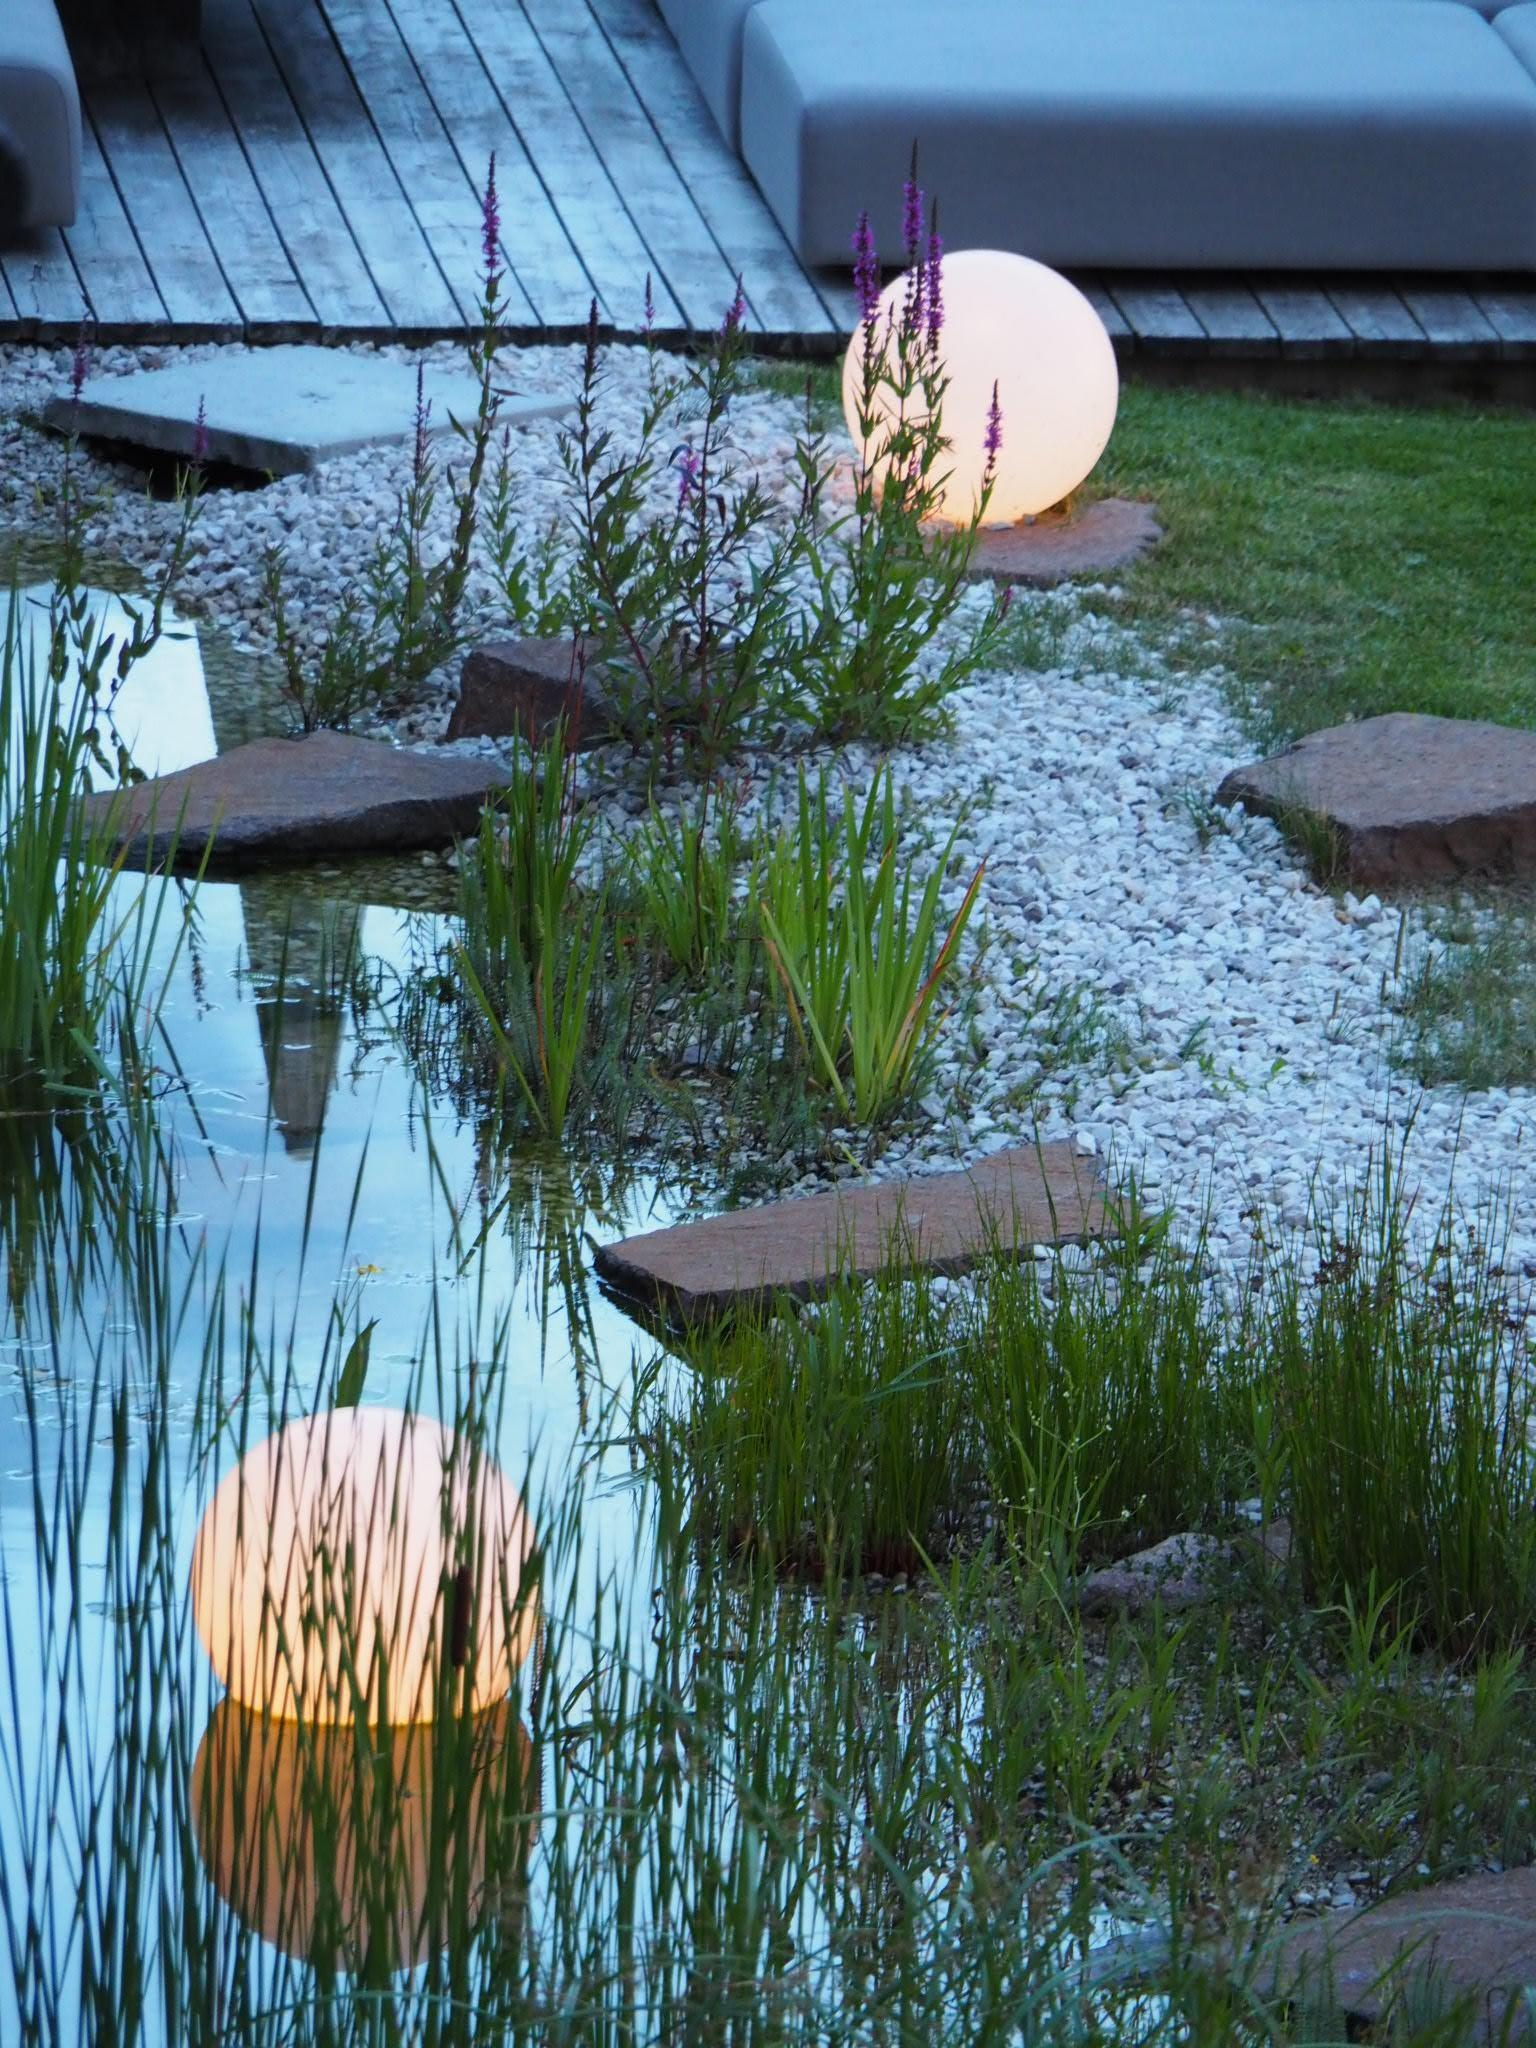 In Love with these Lights #outdoorweek #gartengestaltung